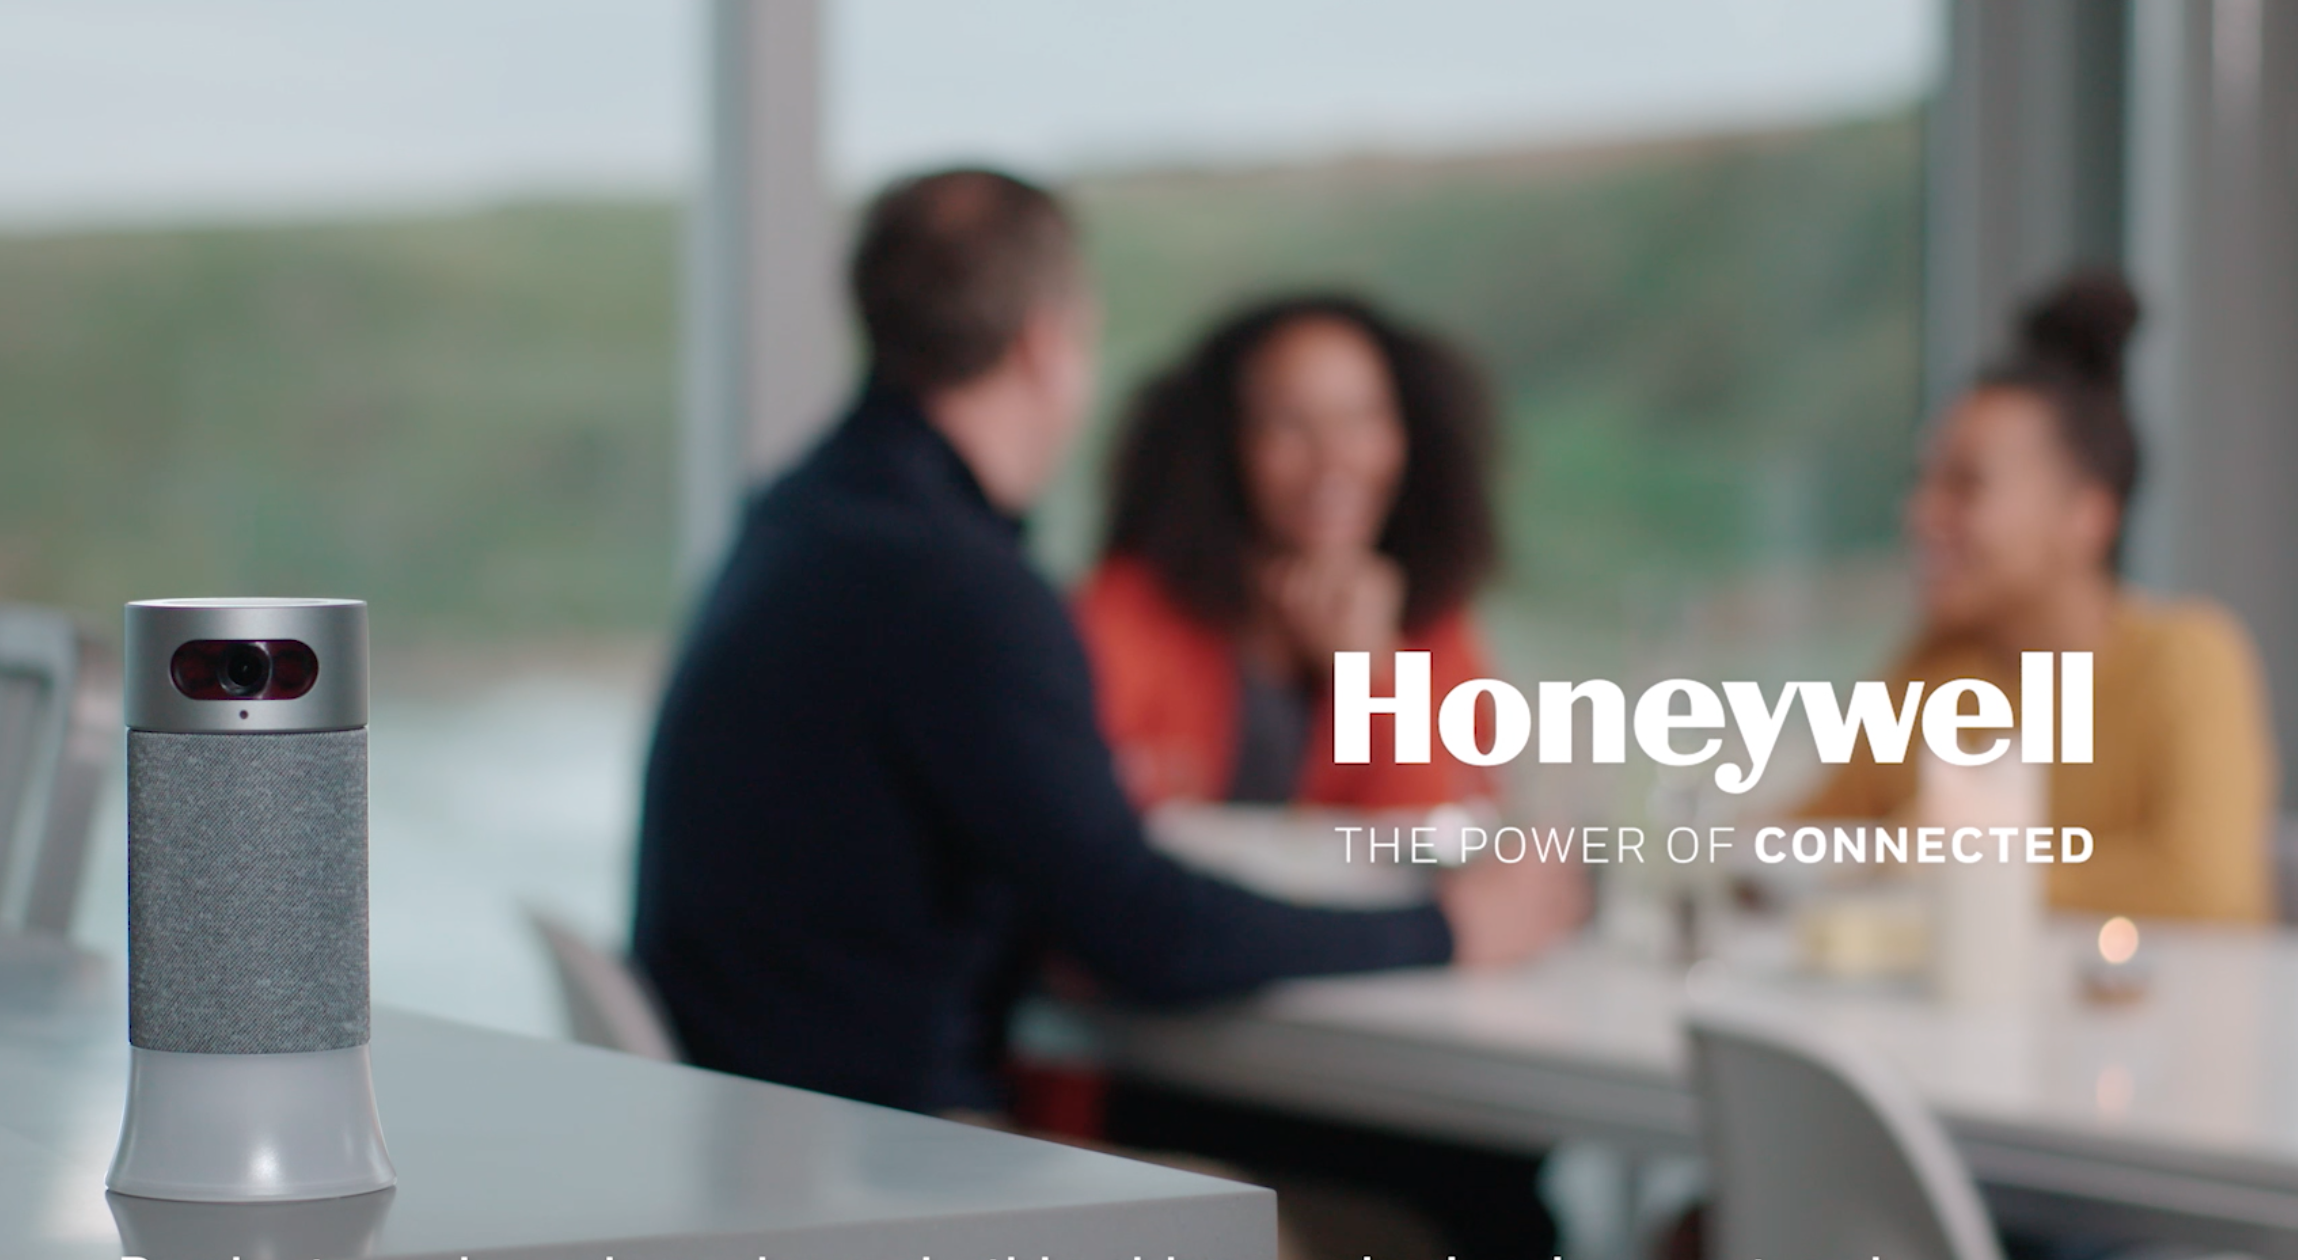 Honeywell: The Power of Connected   The Gate Films/ Good Agency